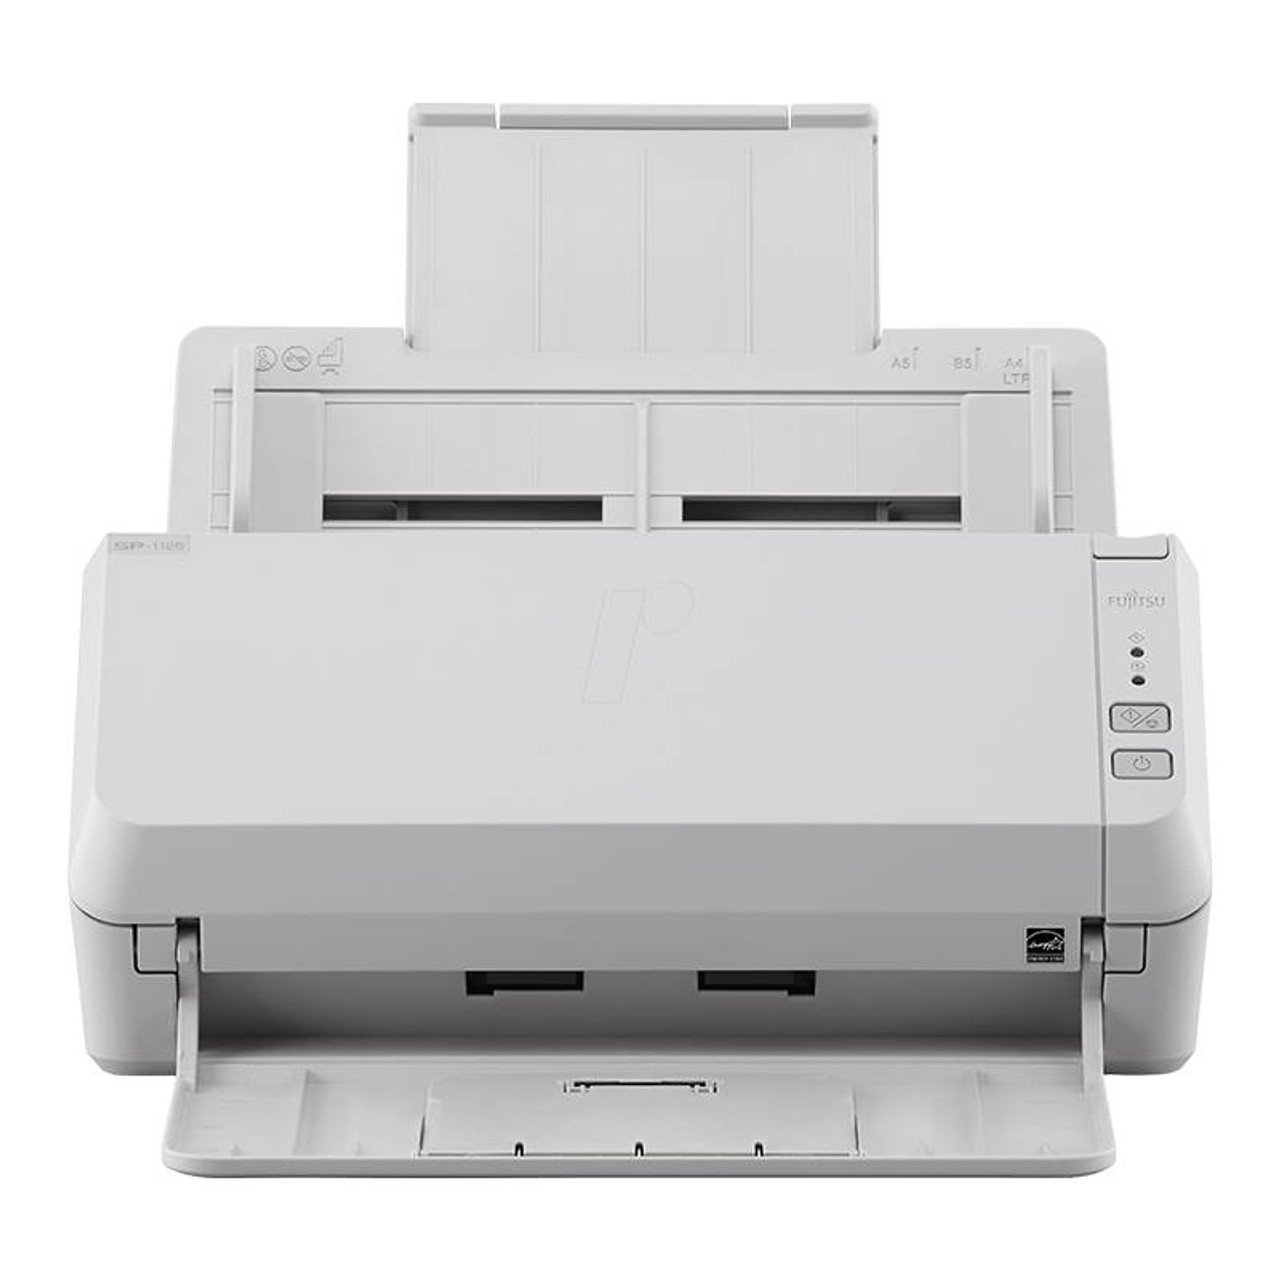 Image for Fujitsu SP-1125 A4 Document Scanner CX Computer Superstore